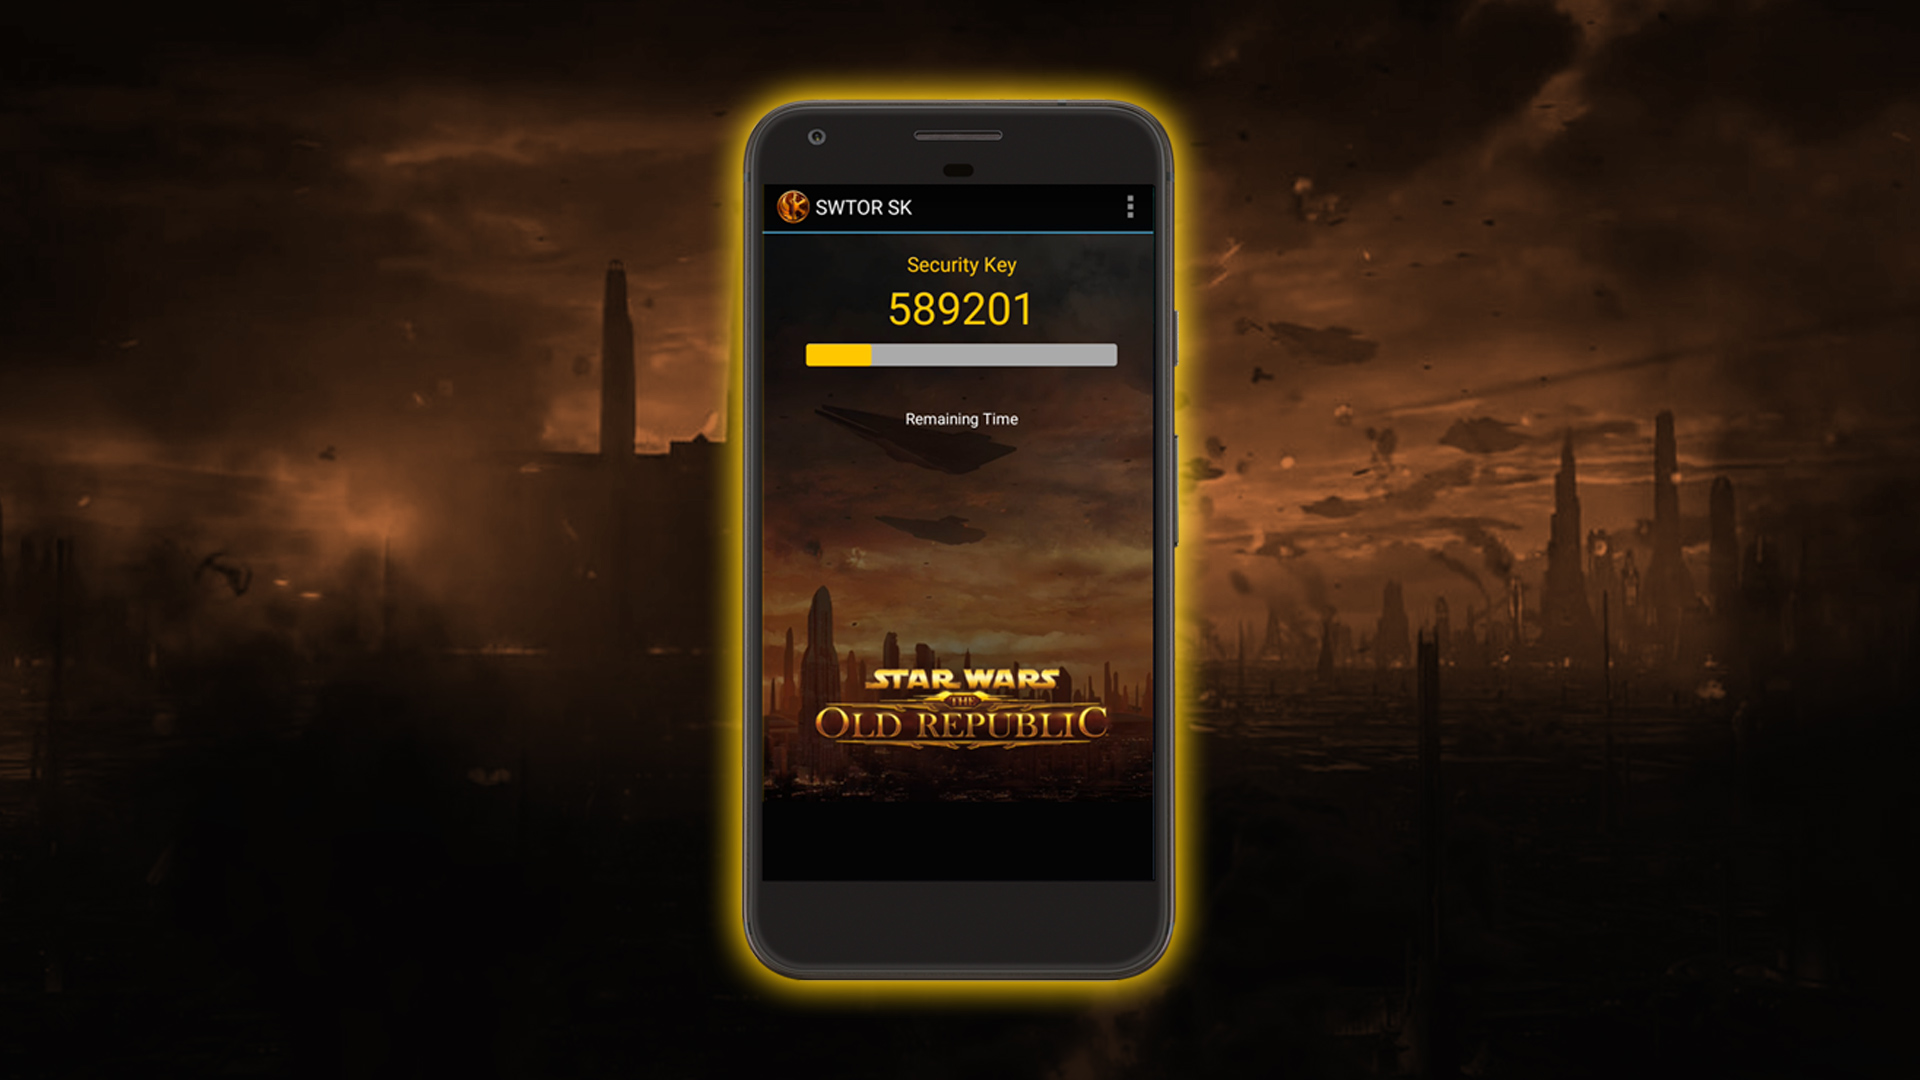 The Old Republic™ Security Key for Android - APK Download